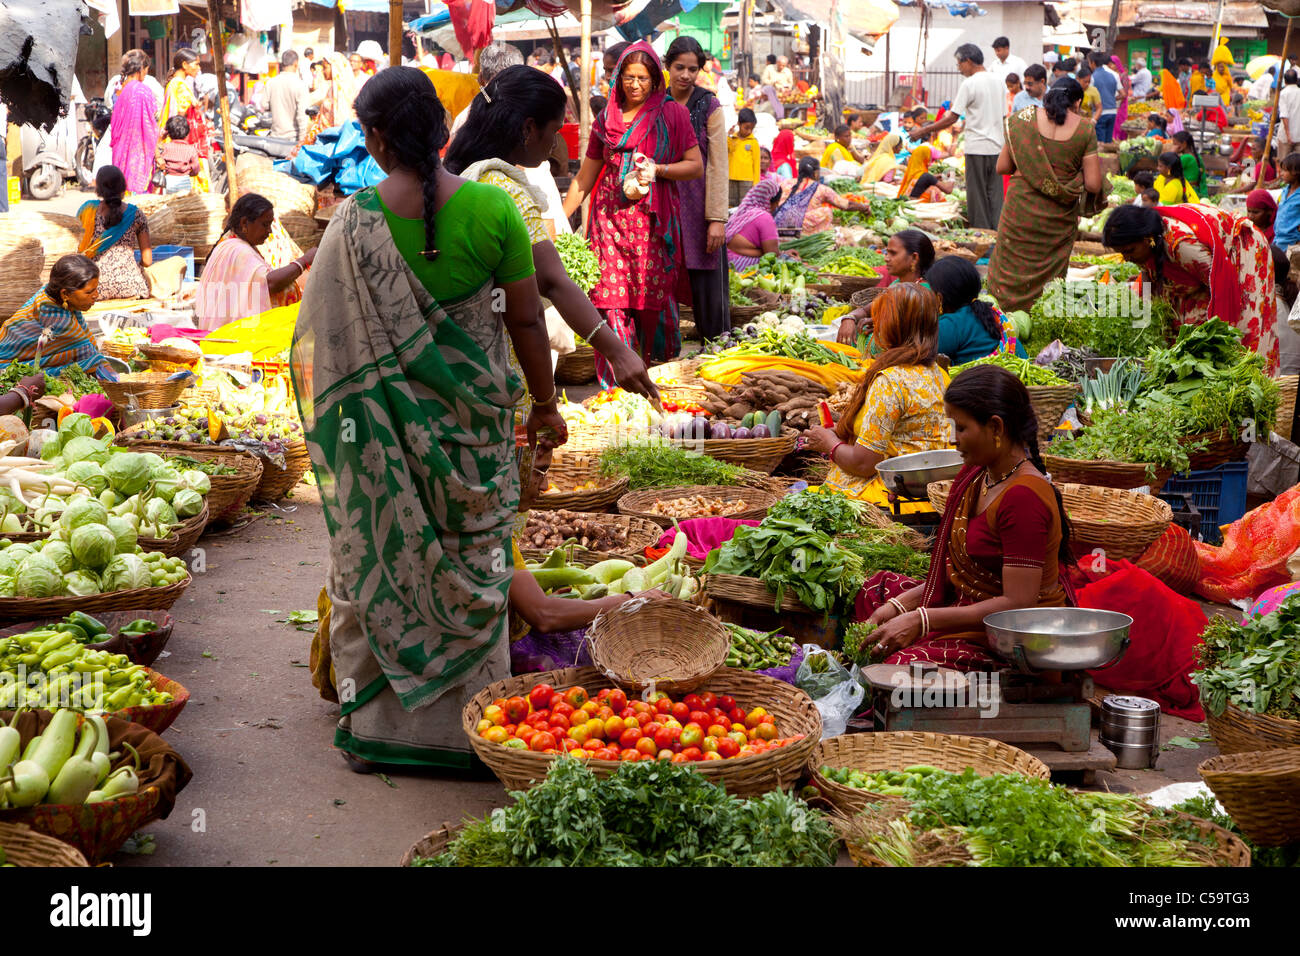 fruit and vegetable market, Udaipur, Rajasthan, india - Stock Image